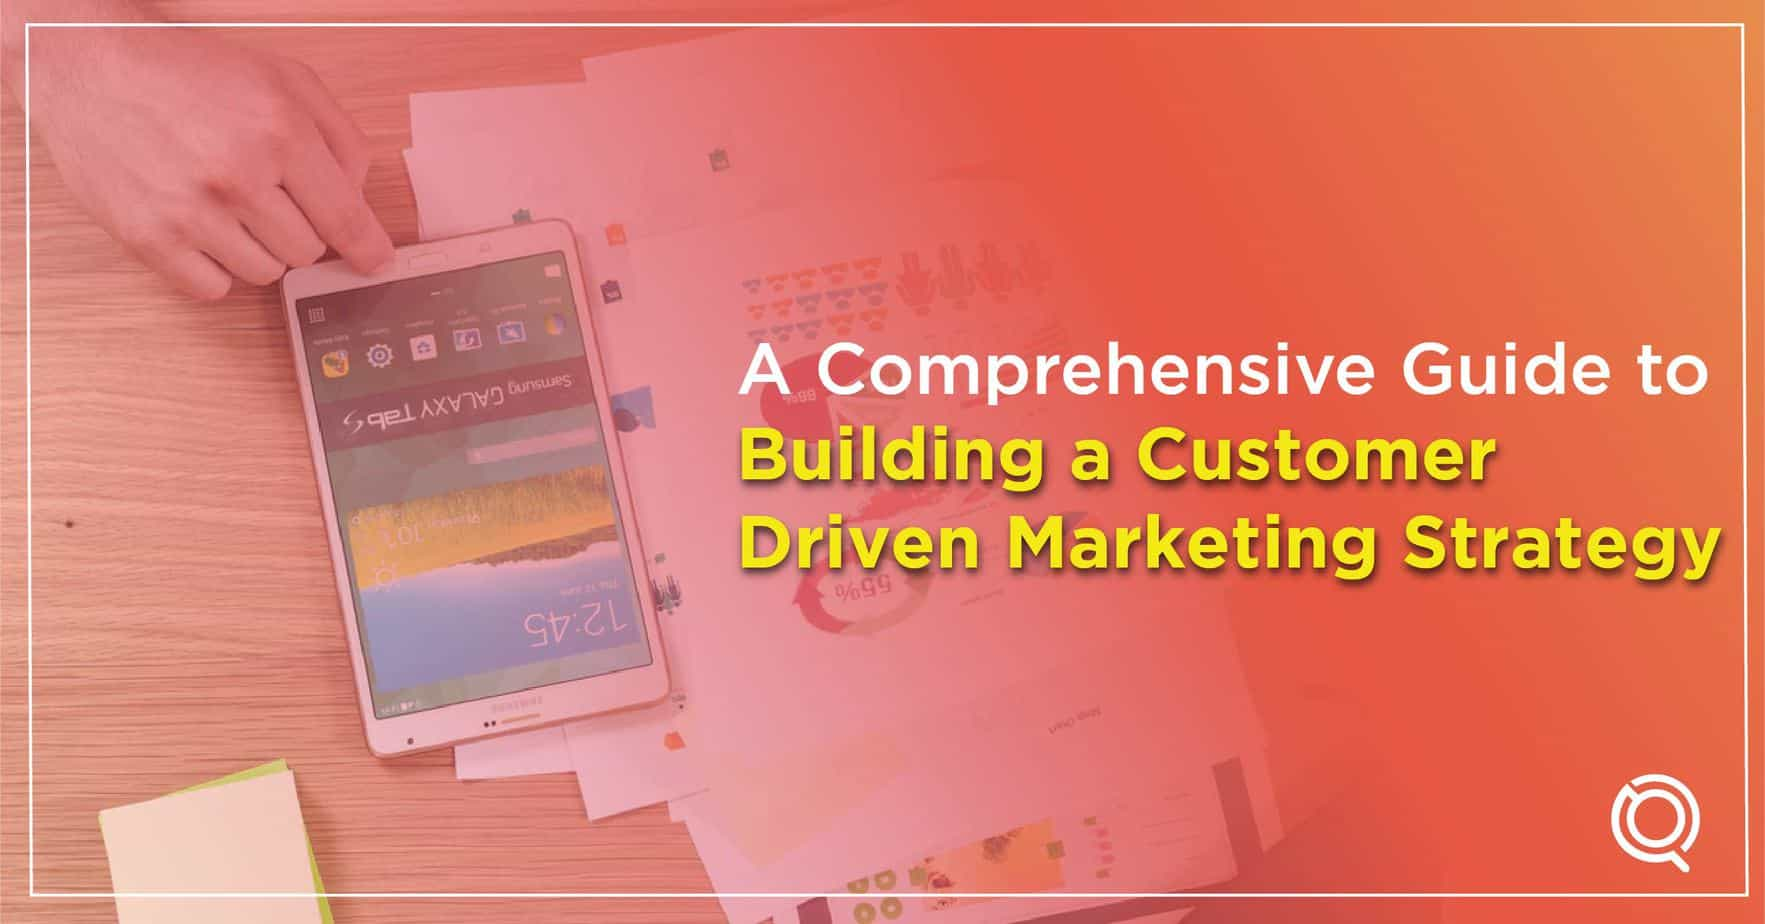 A Comprehensive Guide to Building a Customer-Driven Marketing Strategy - One Search Pro Digital Marketing Agency